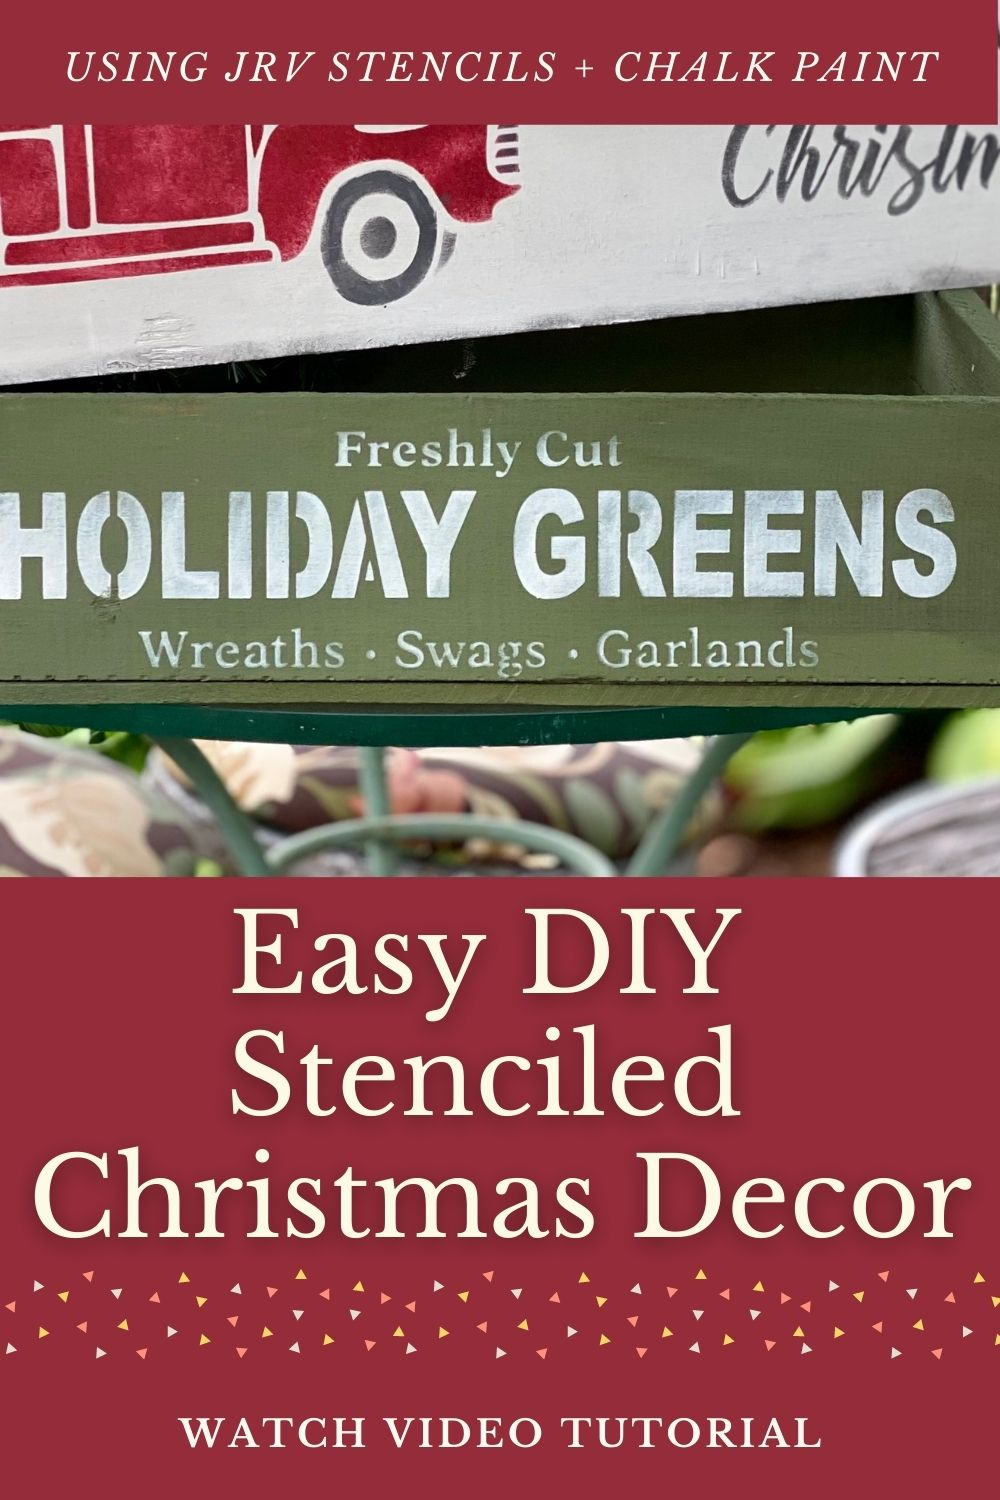 Easy DIY Christmas Decor Project: Just a Stencil and Chalk Paint